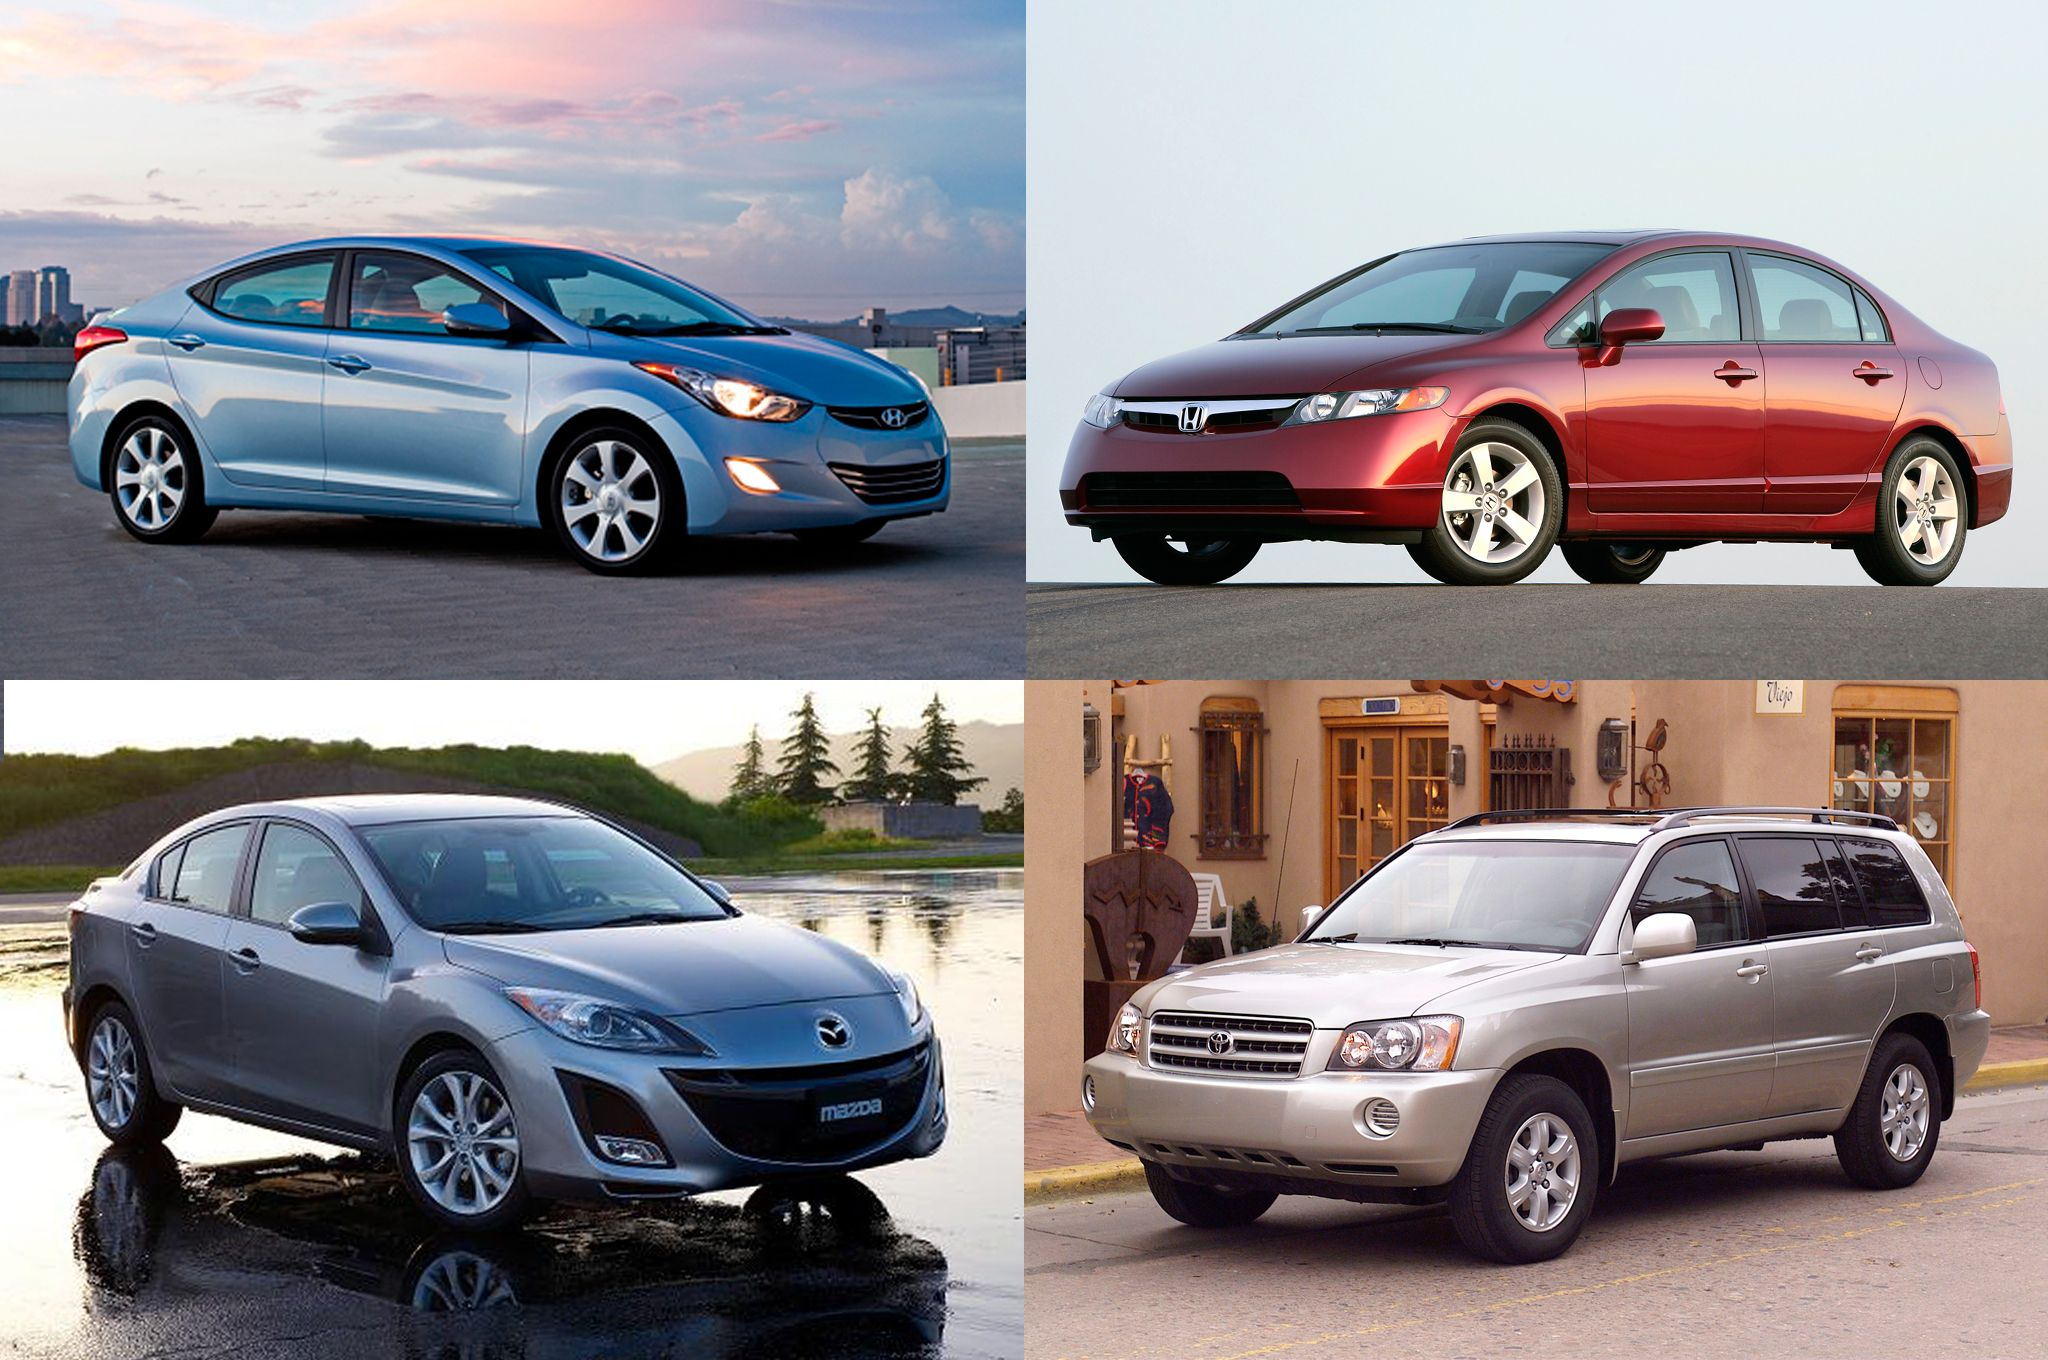 Advices to Buy Used Cars Online Used cars online, Used